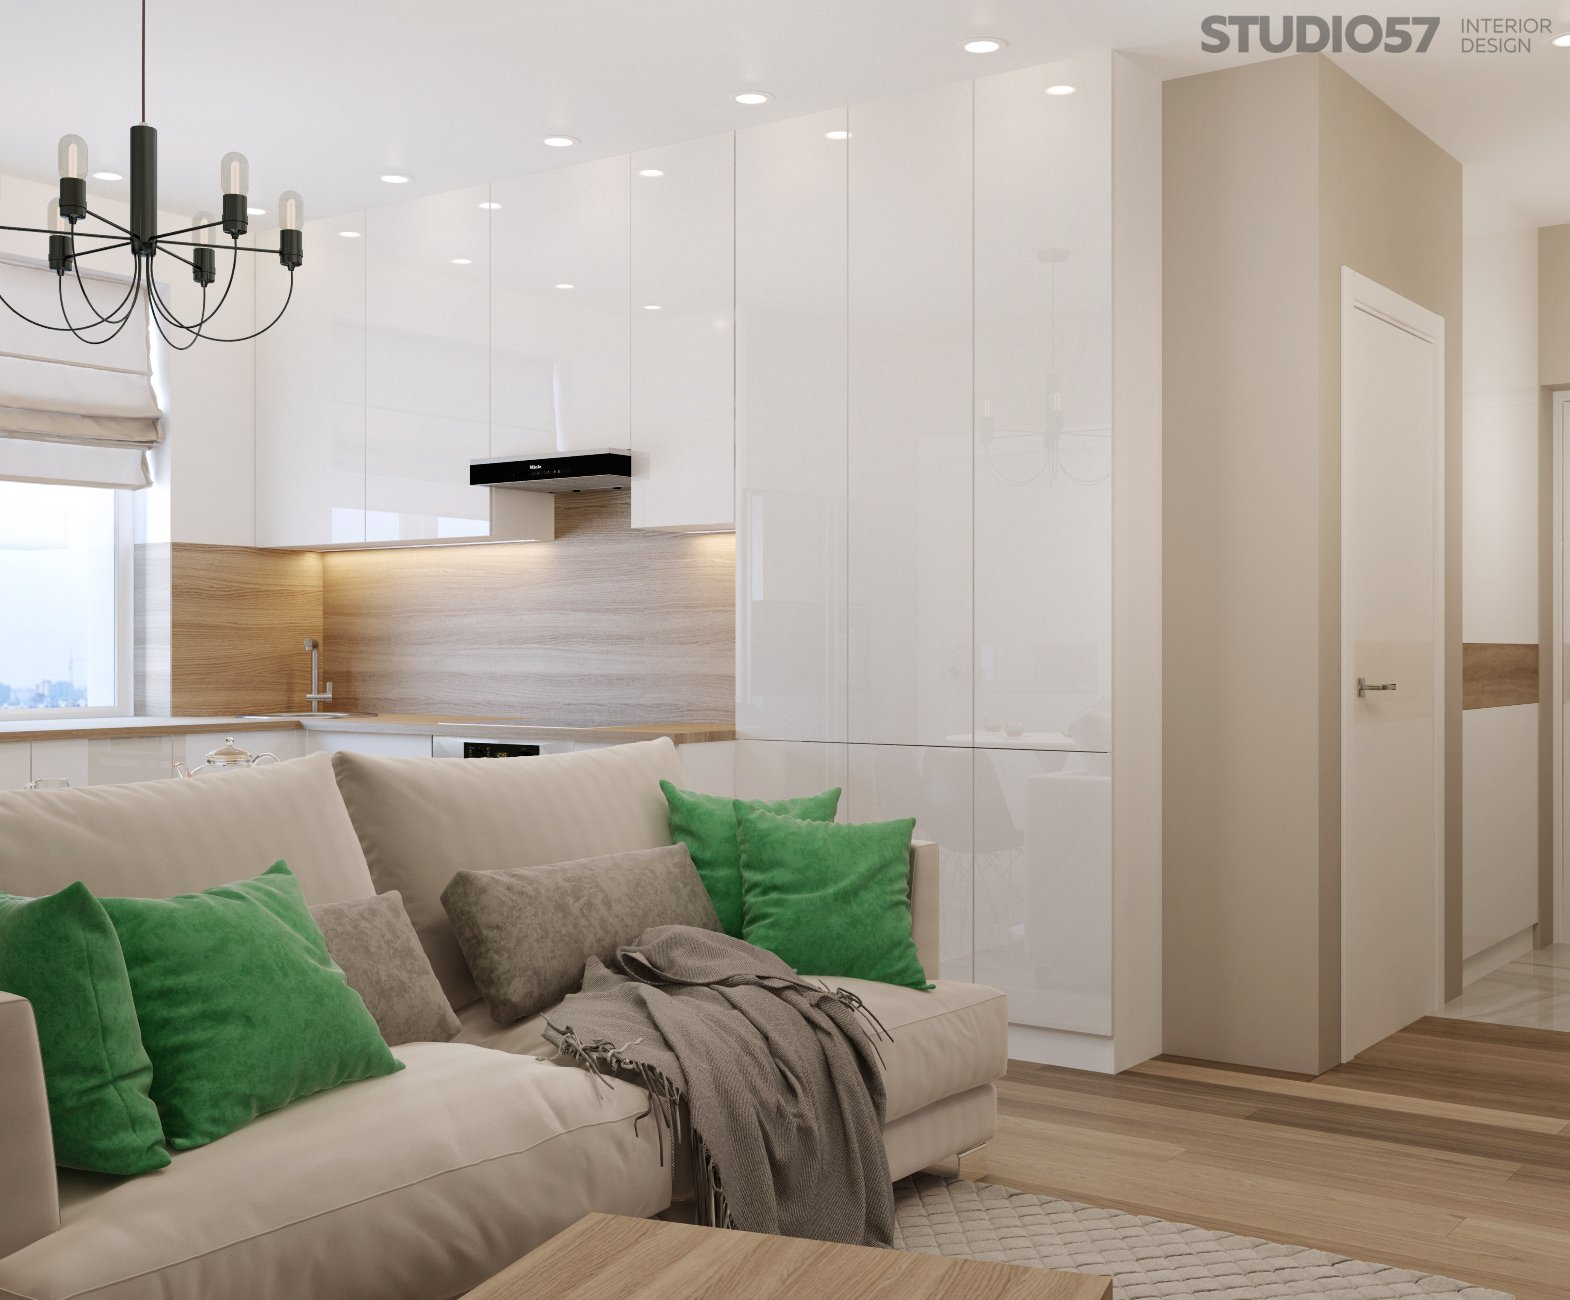 Interior design studio apartment in modern style photo